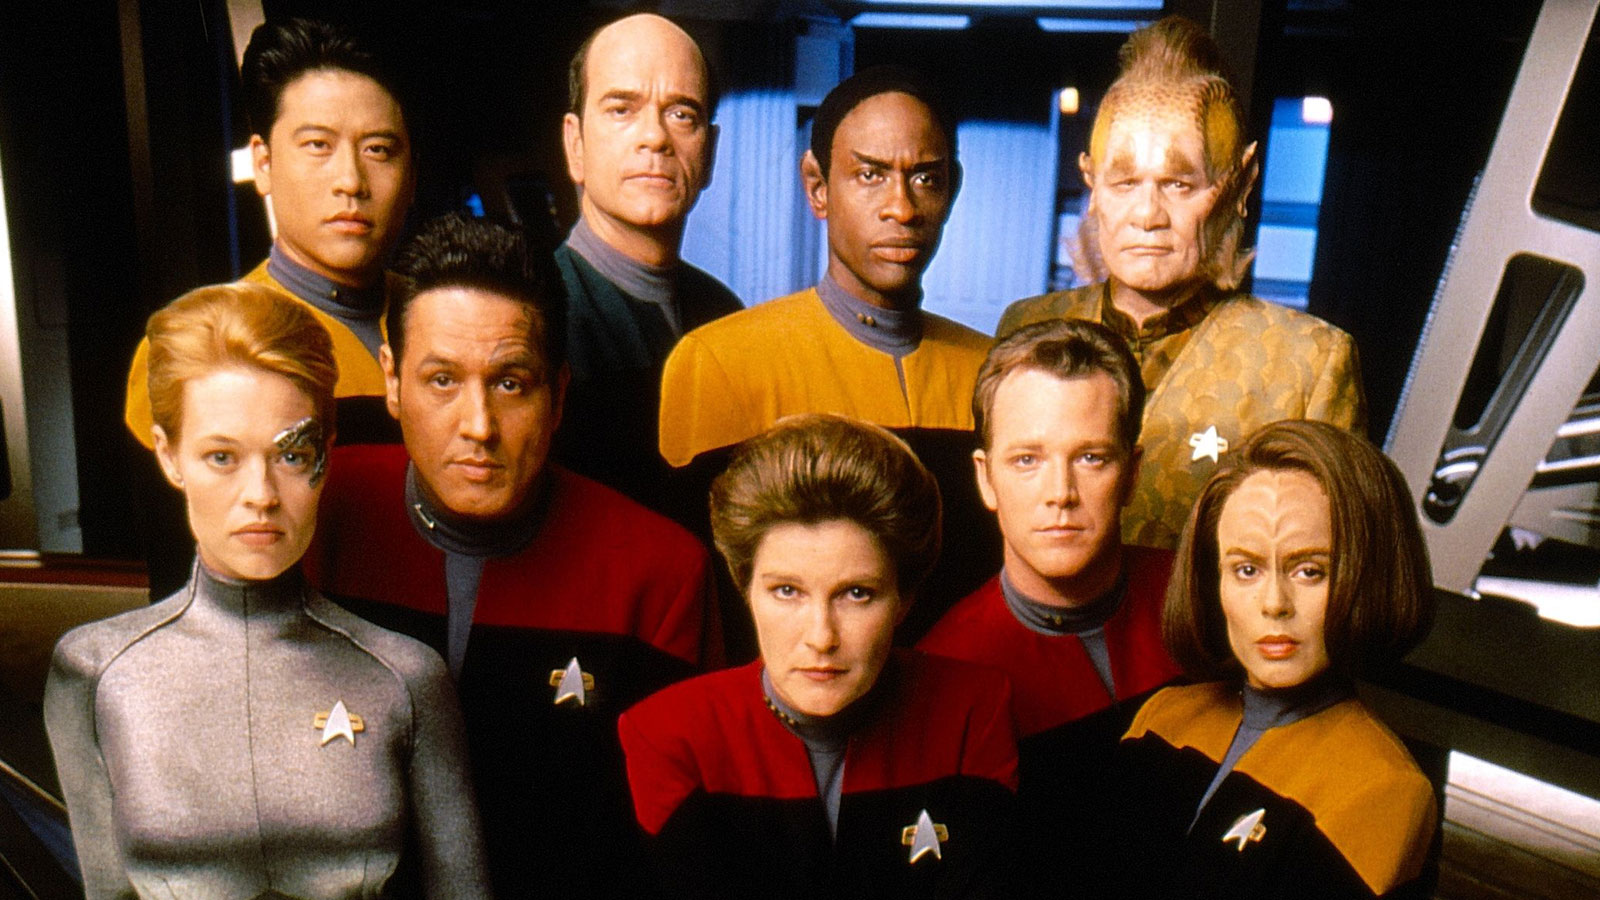 Star Trek: Voyager Documentary Has Returned To Production, Crowdfunding Campaign Announced